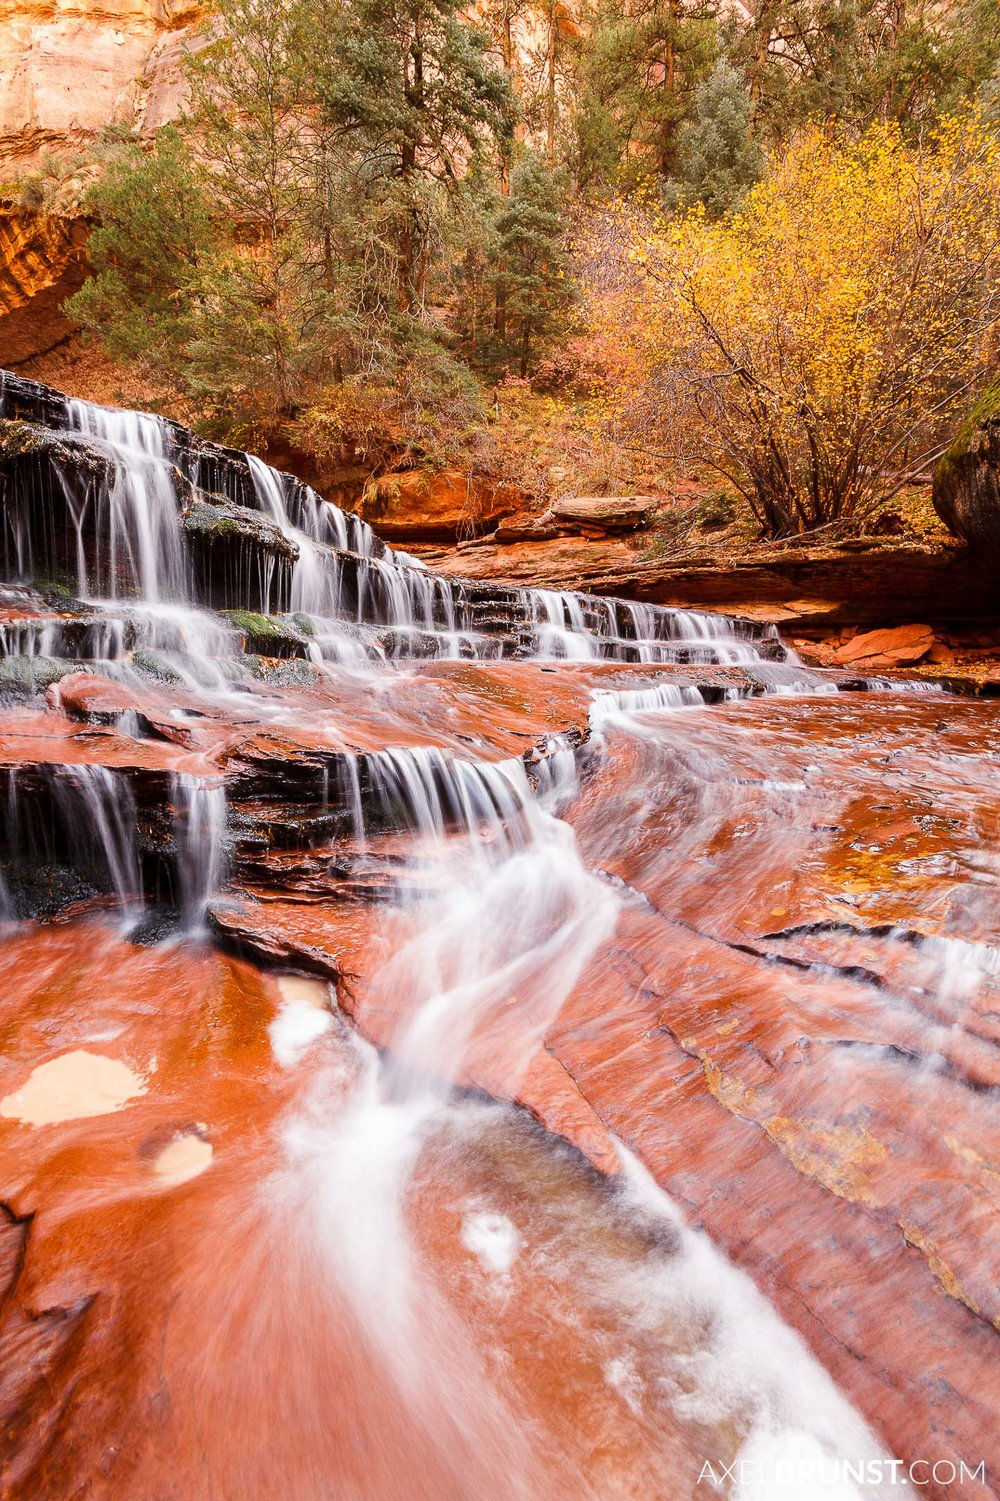 Zion-national-park-utah-3.jpg